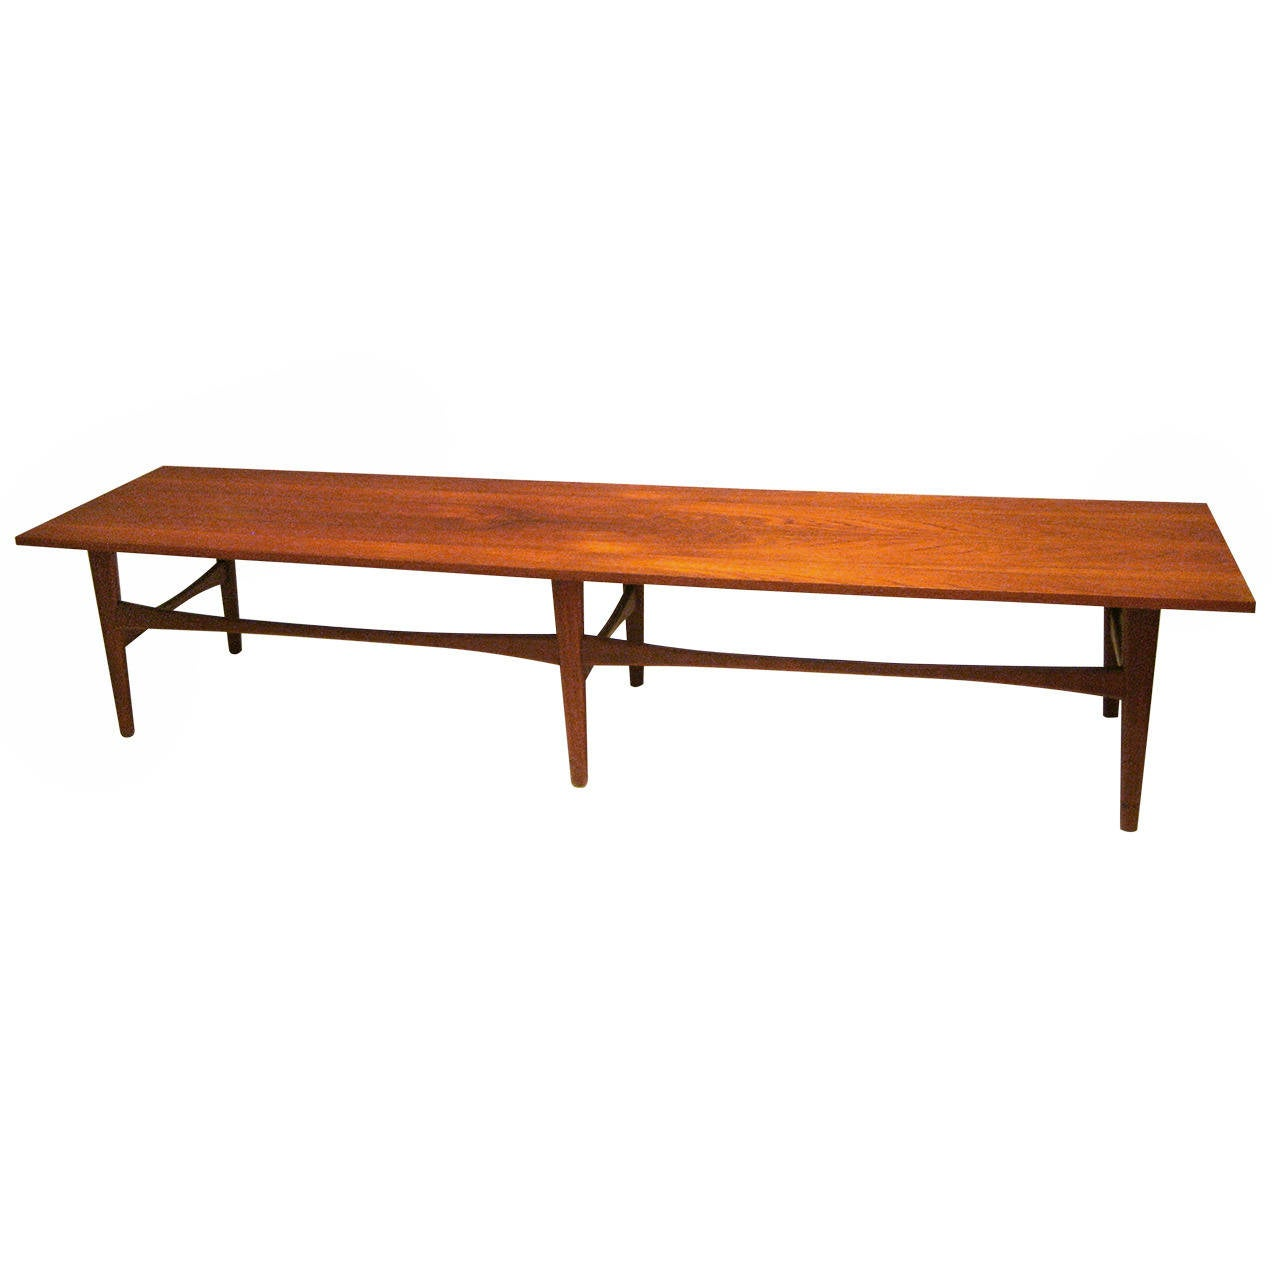 Danish Modern Long Coffee Table Or Bench In Teak 1